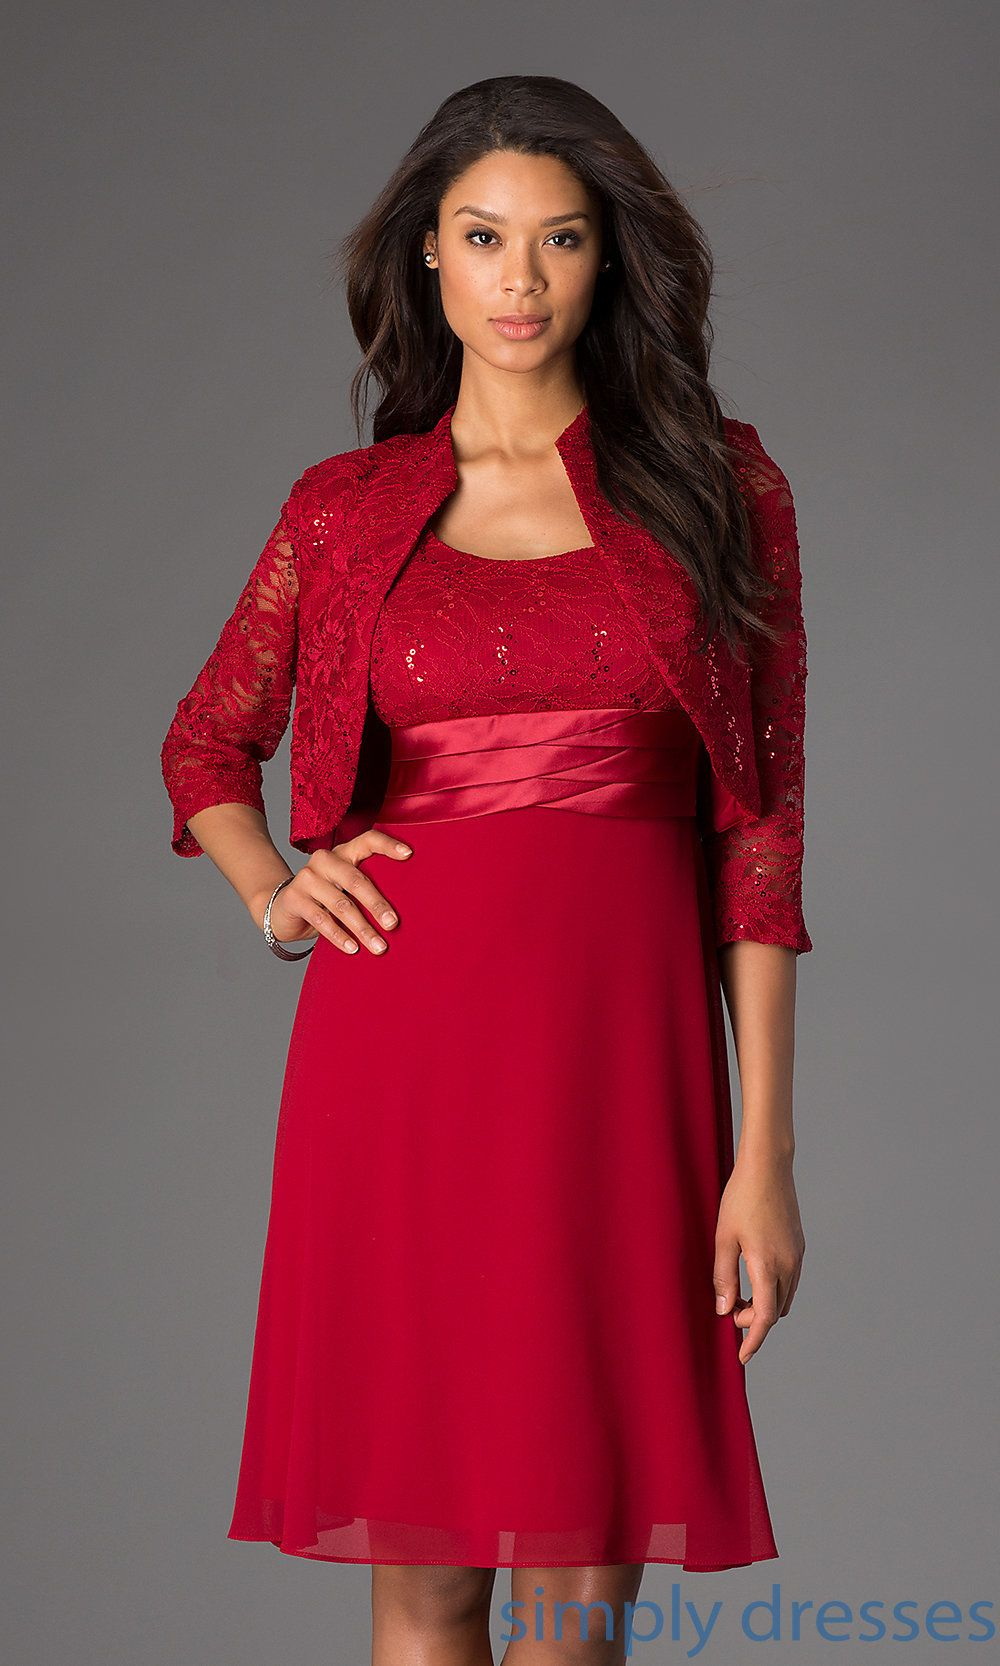 Lace Embellished Semi Formal Dresses With Jacket Simply